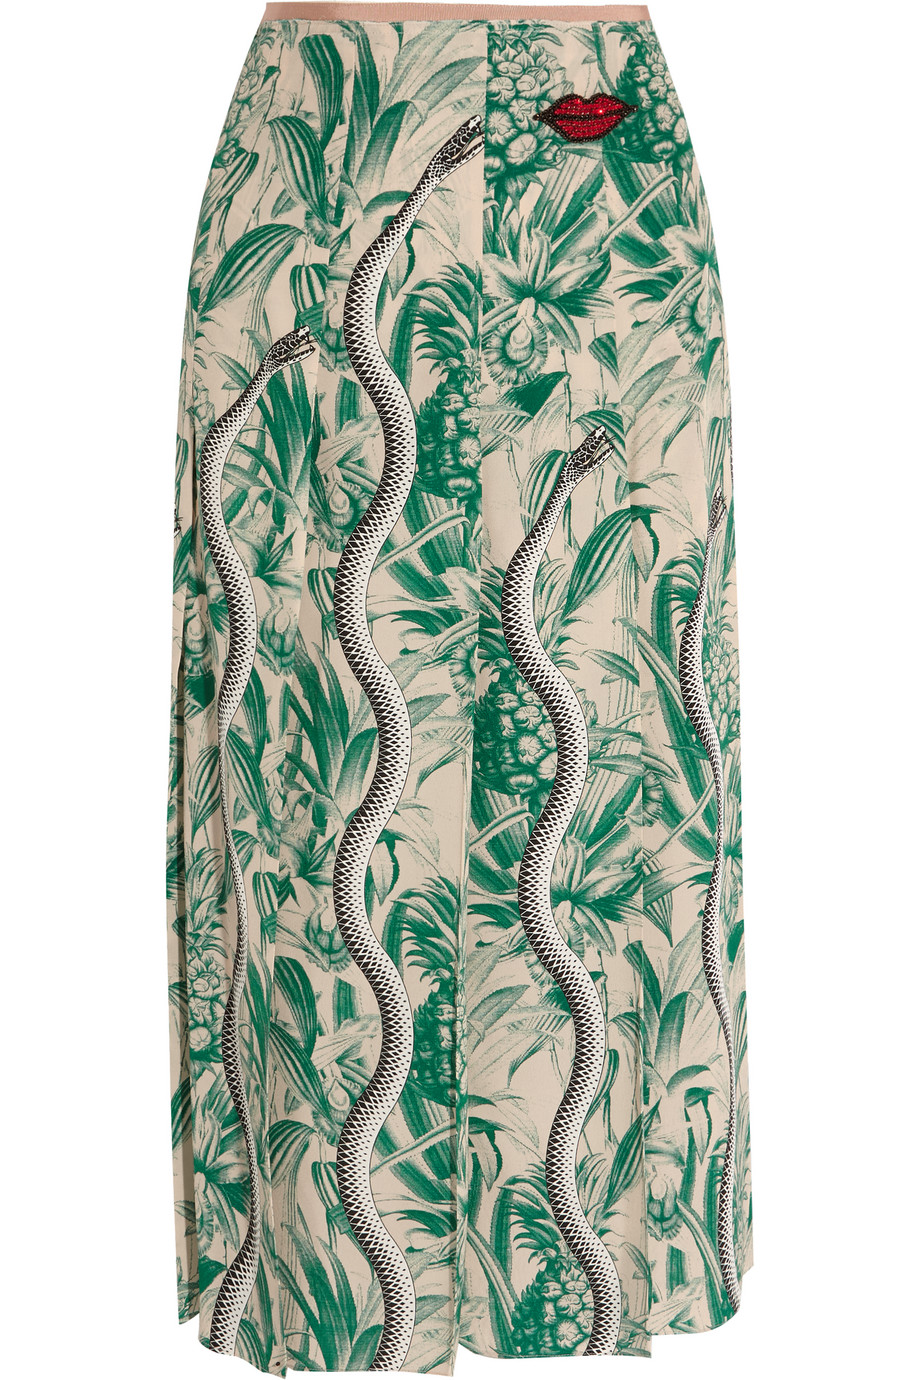 Gucci Embellished Printed Silk Crepe De Chine Midi Skirt, Green, Women's, Size: 36